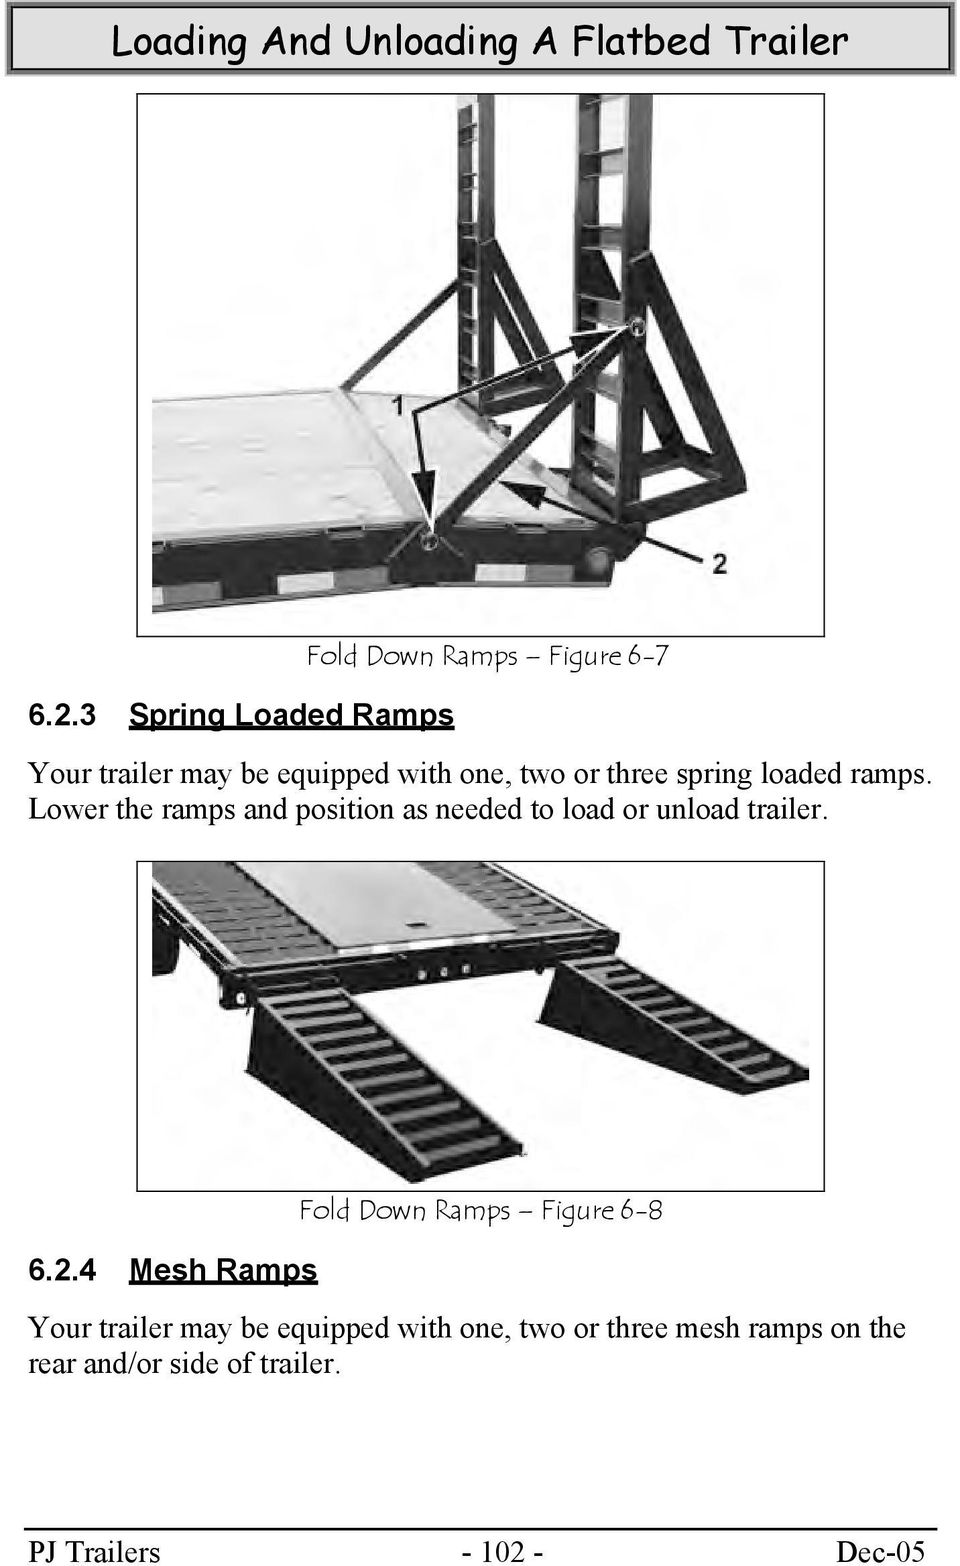 Lower the ramps and position as needed to load or unload trailer. 6.2.